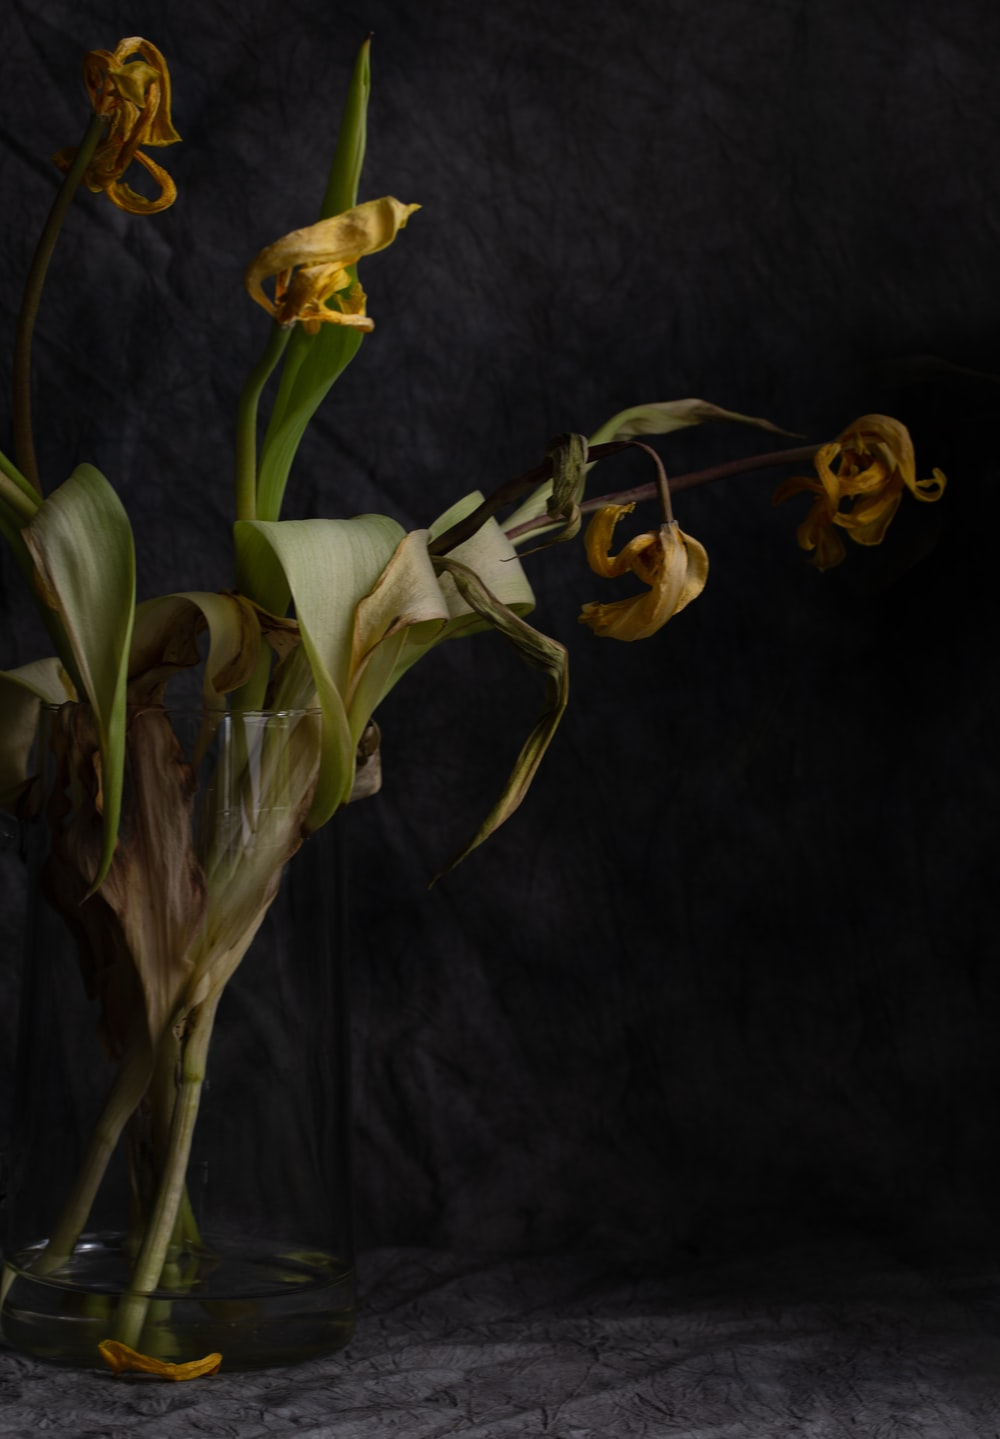 yellow and white flower on black textile